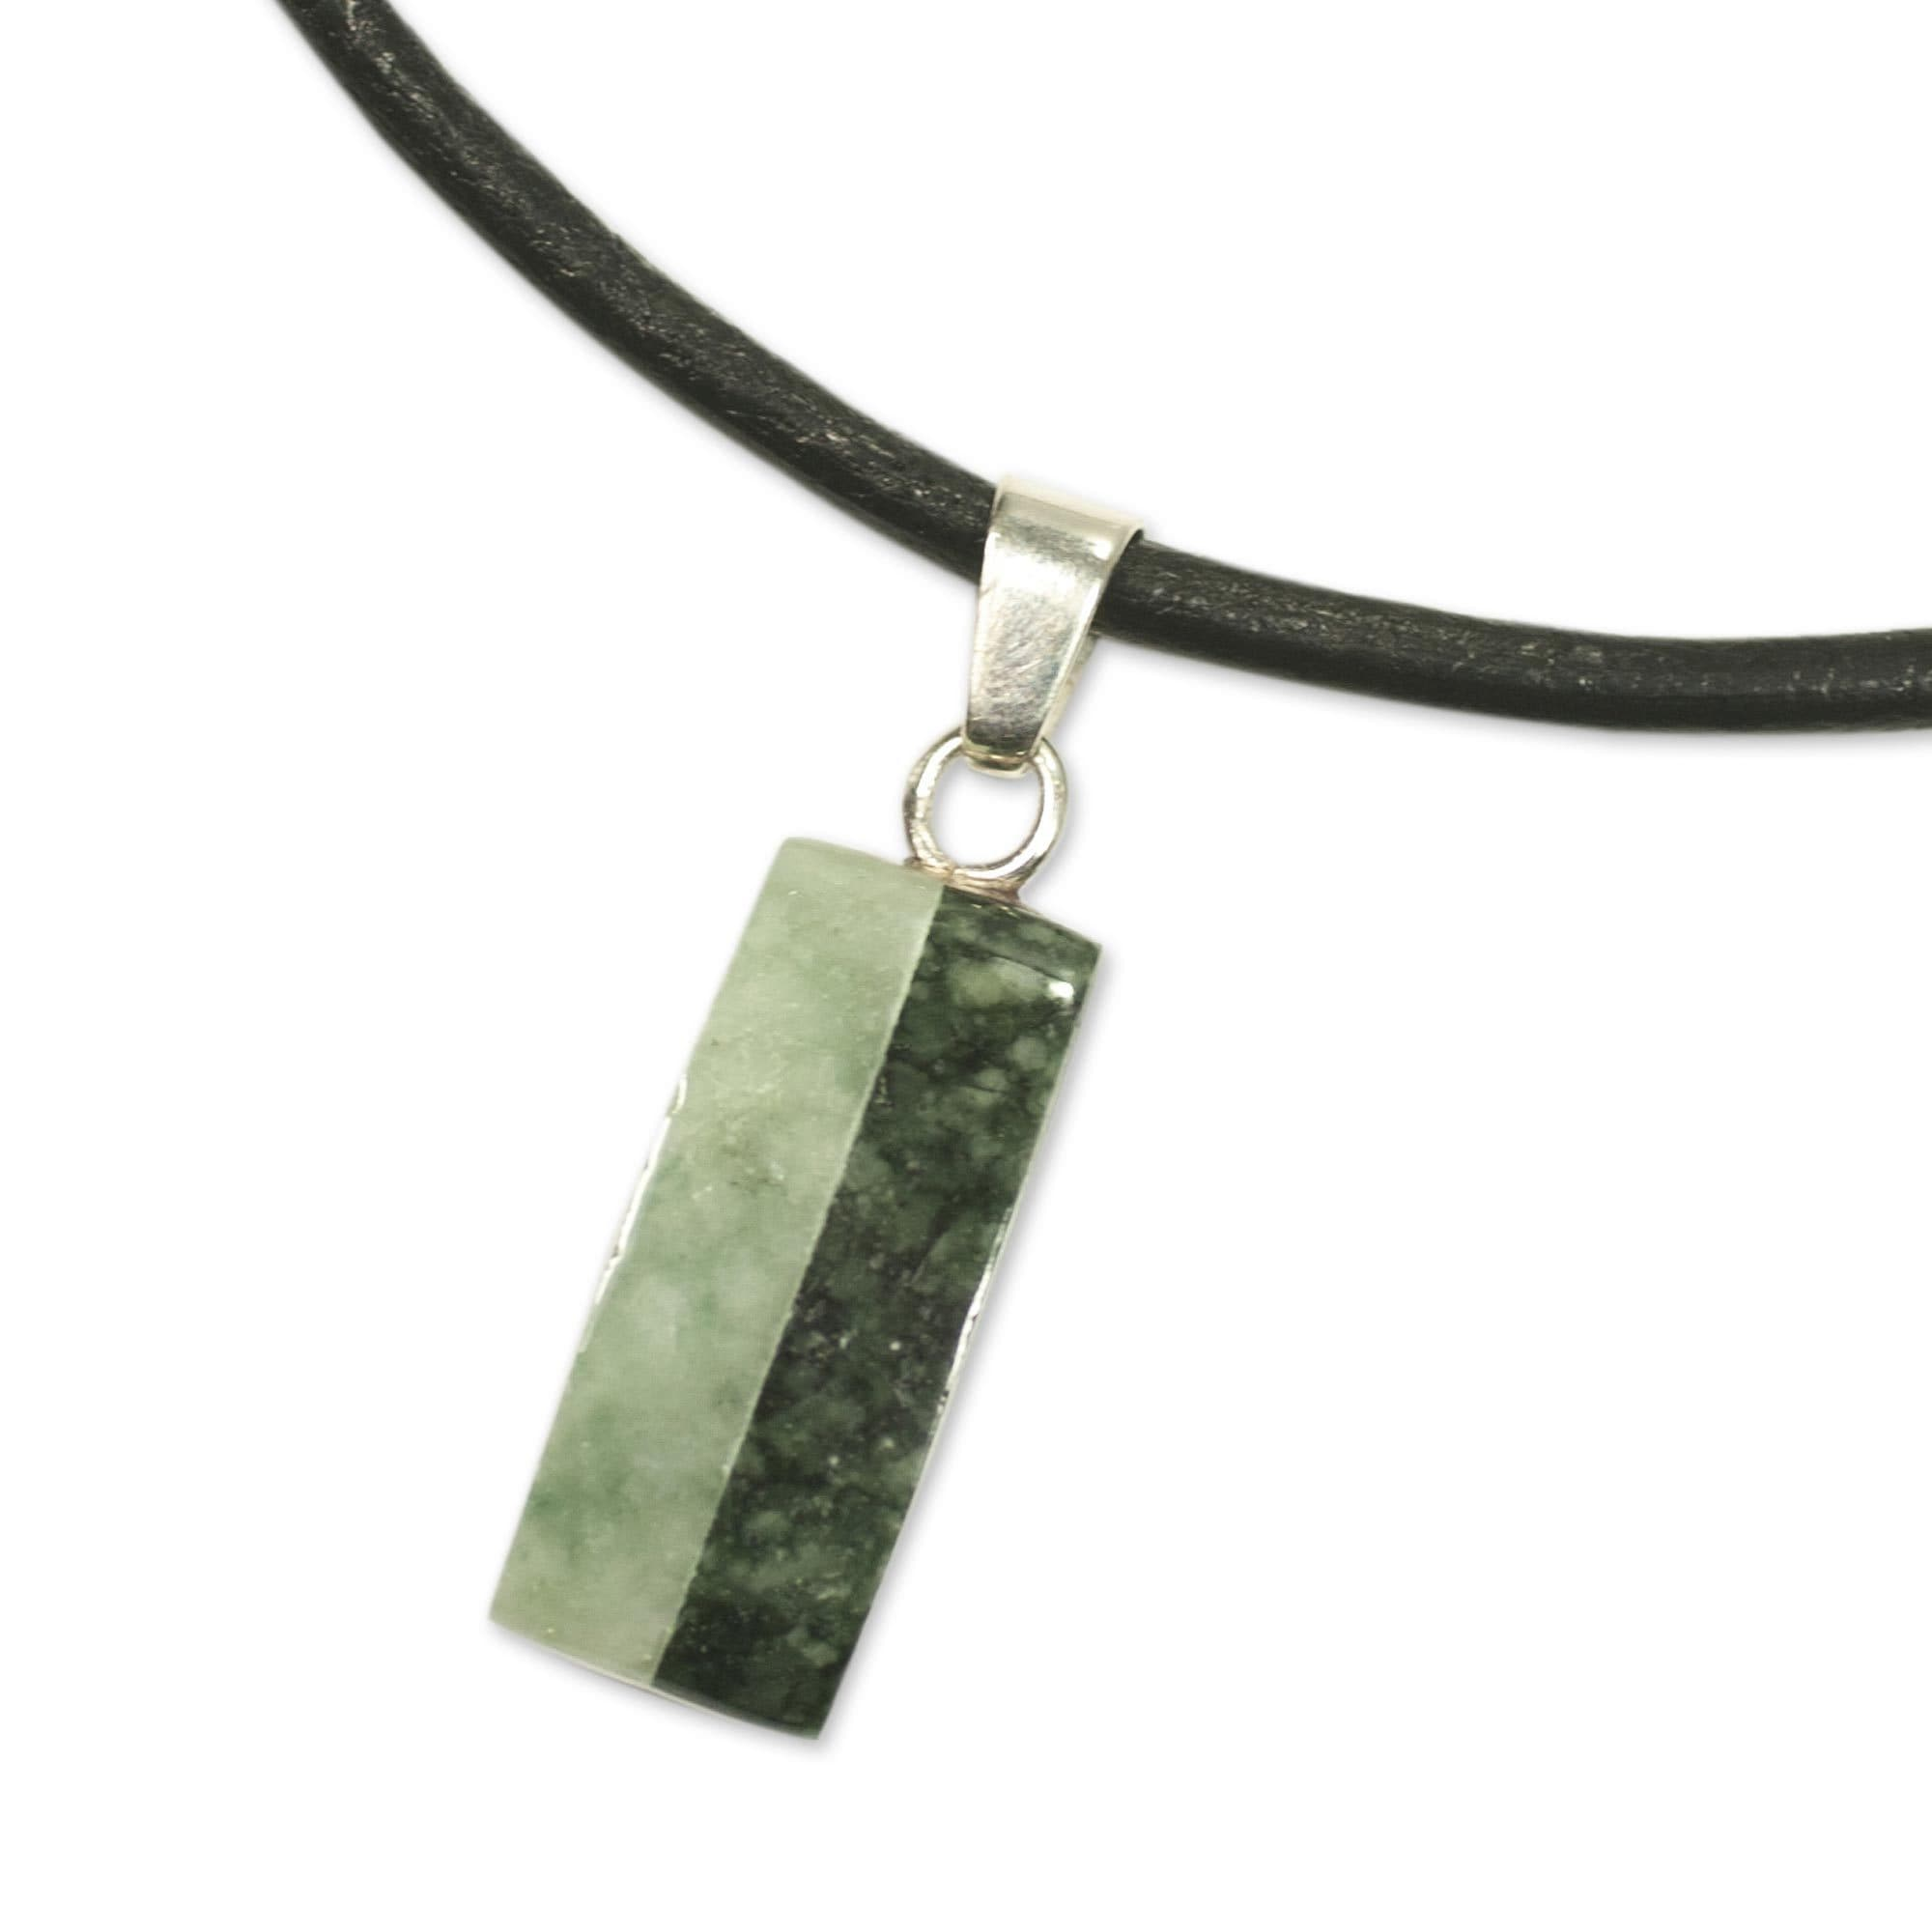 style more supply jade index than chinese necklace is influencing gold precious cnn this article